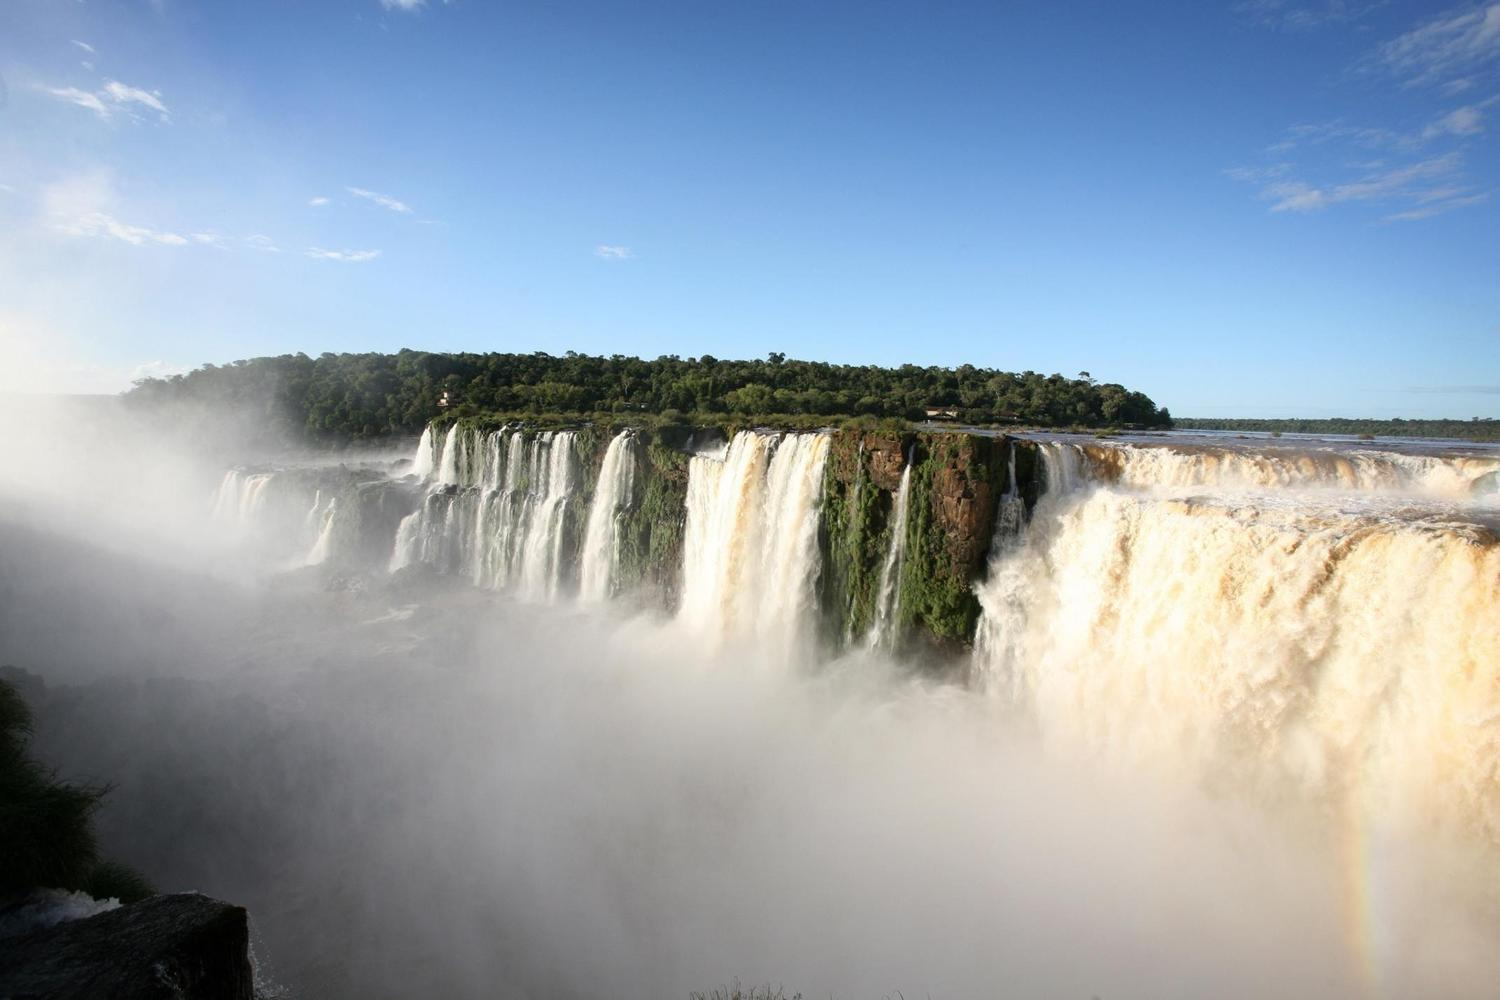 Mists rising off the Argentine side of the Iguassu Falls